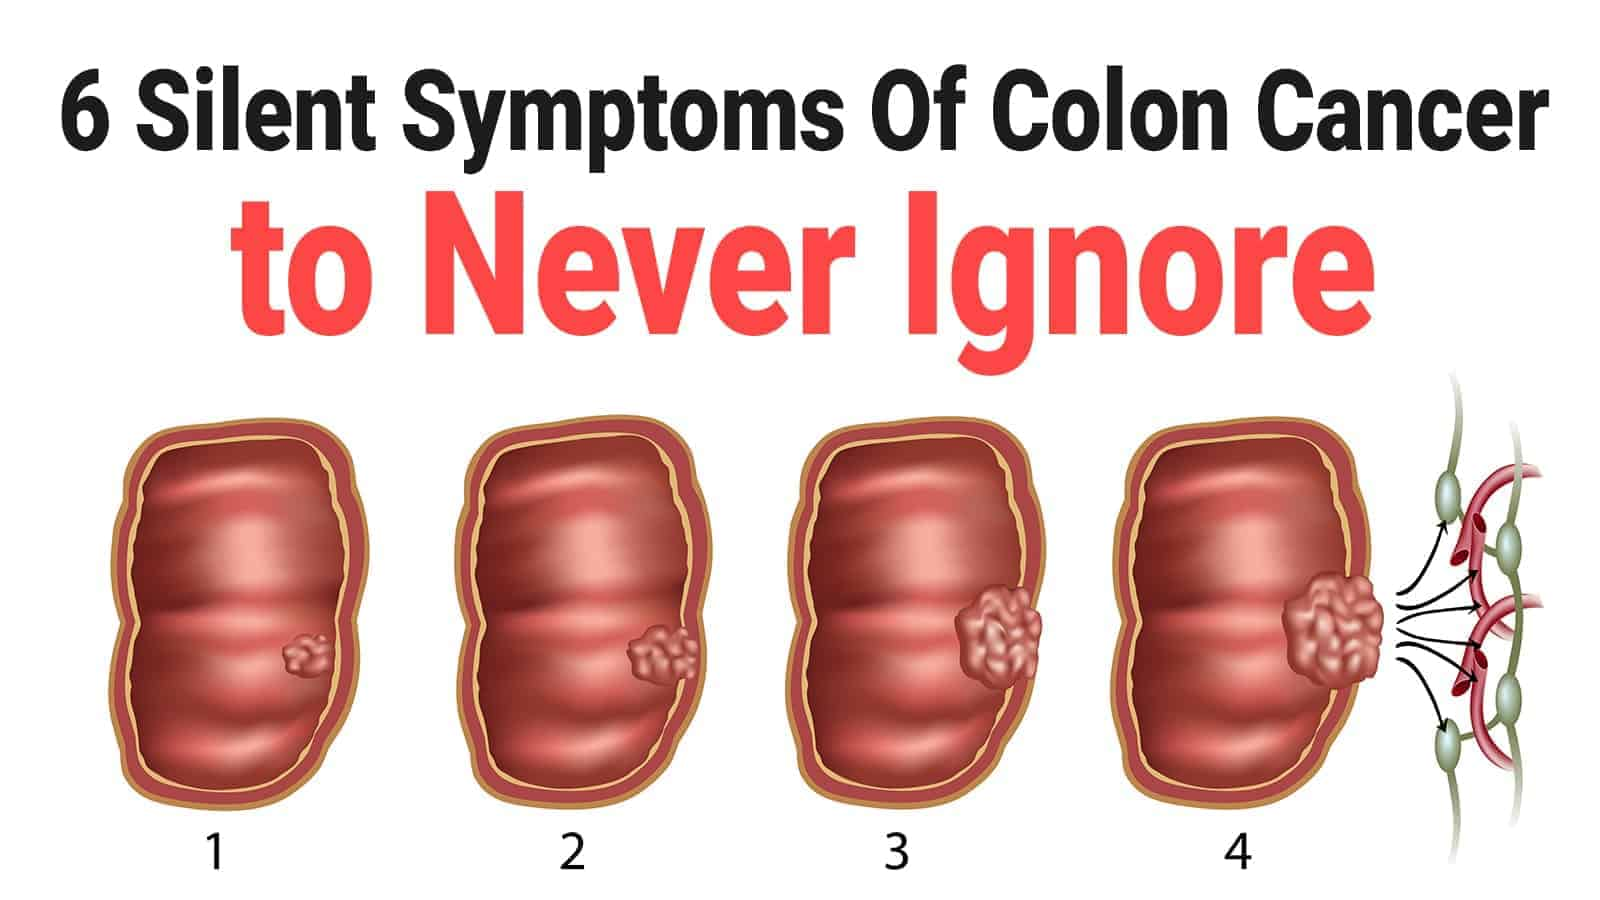 Keighley Williams Surgery Of The Anus Rectum And Colon Cancer Colon Pain